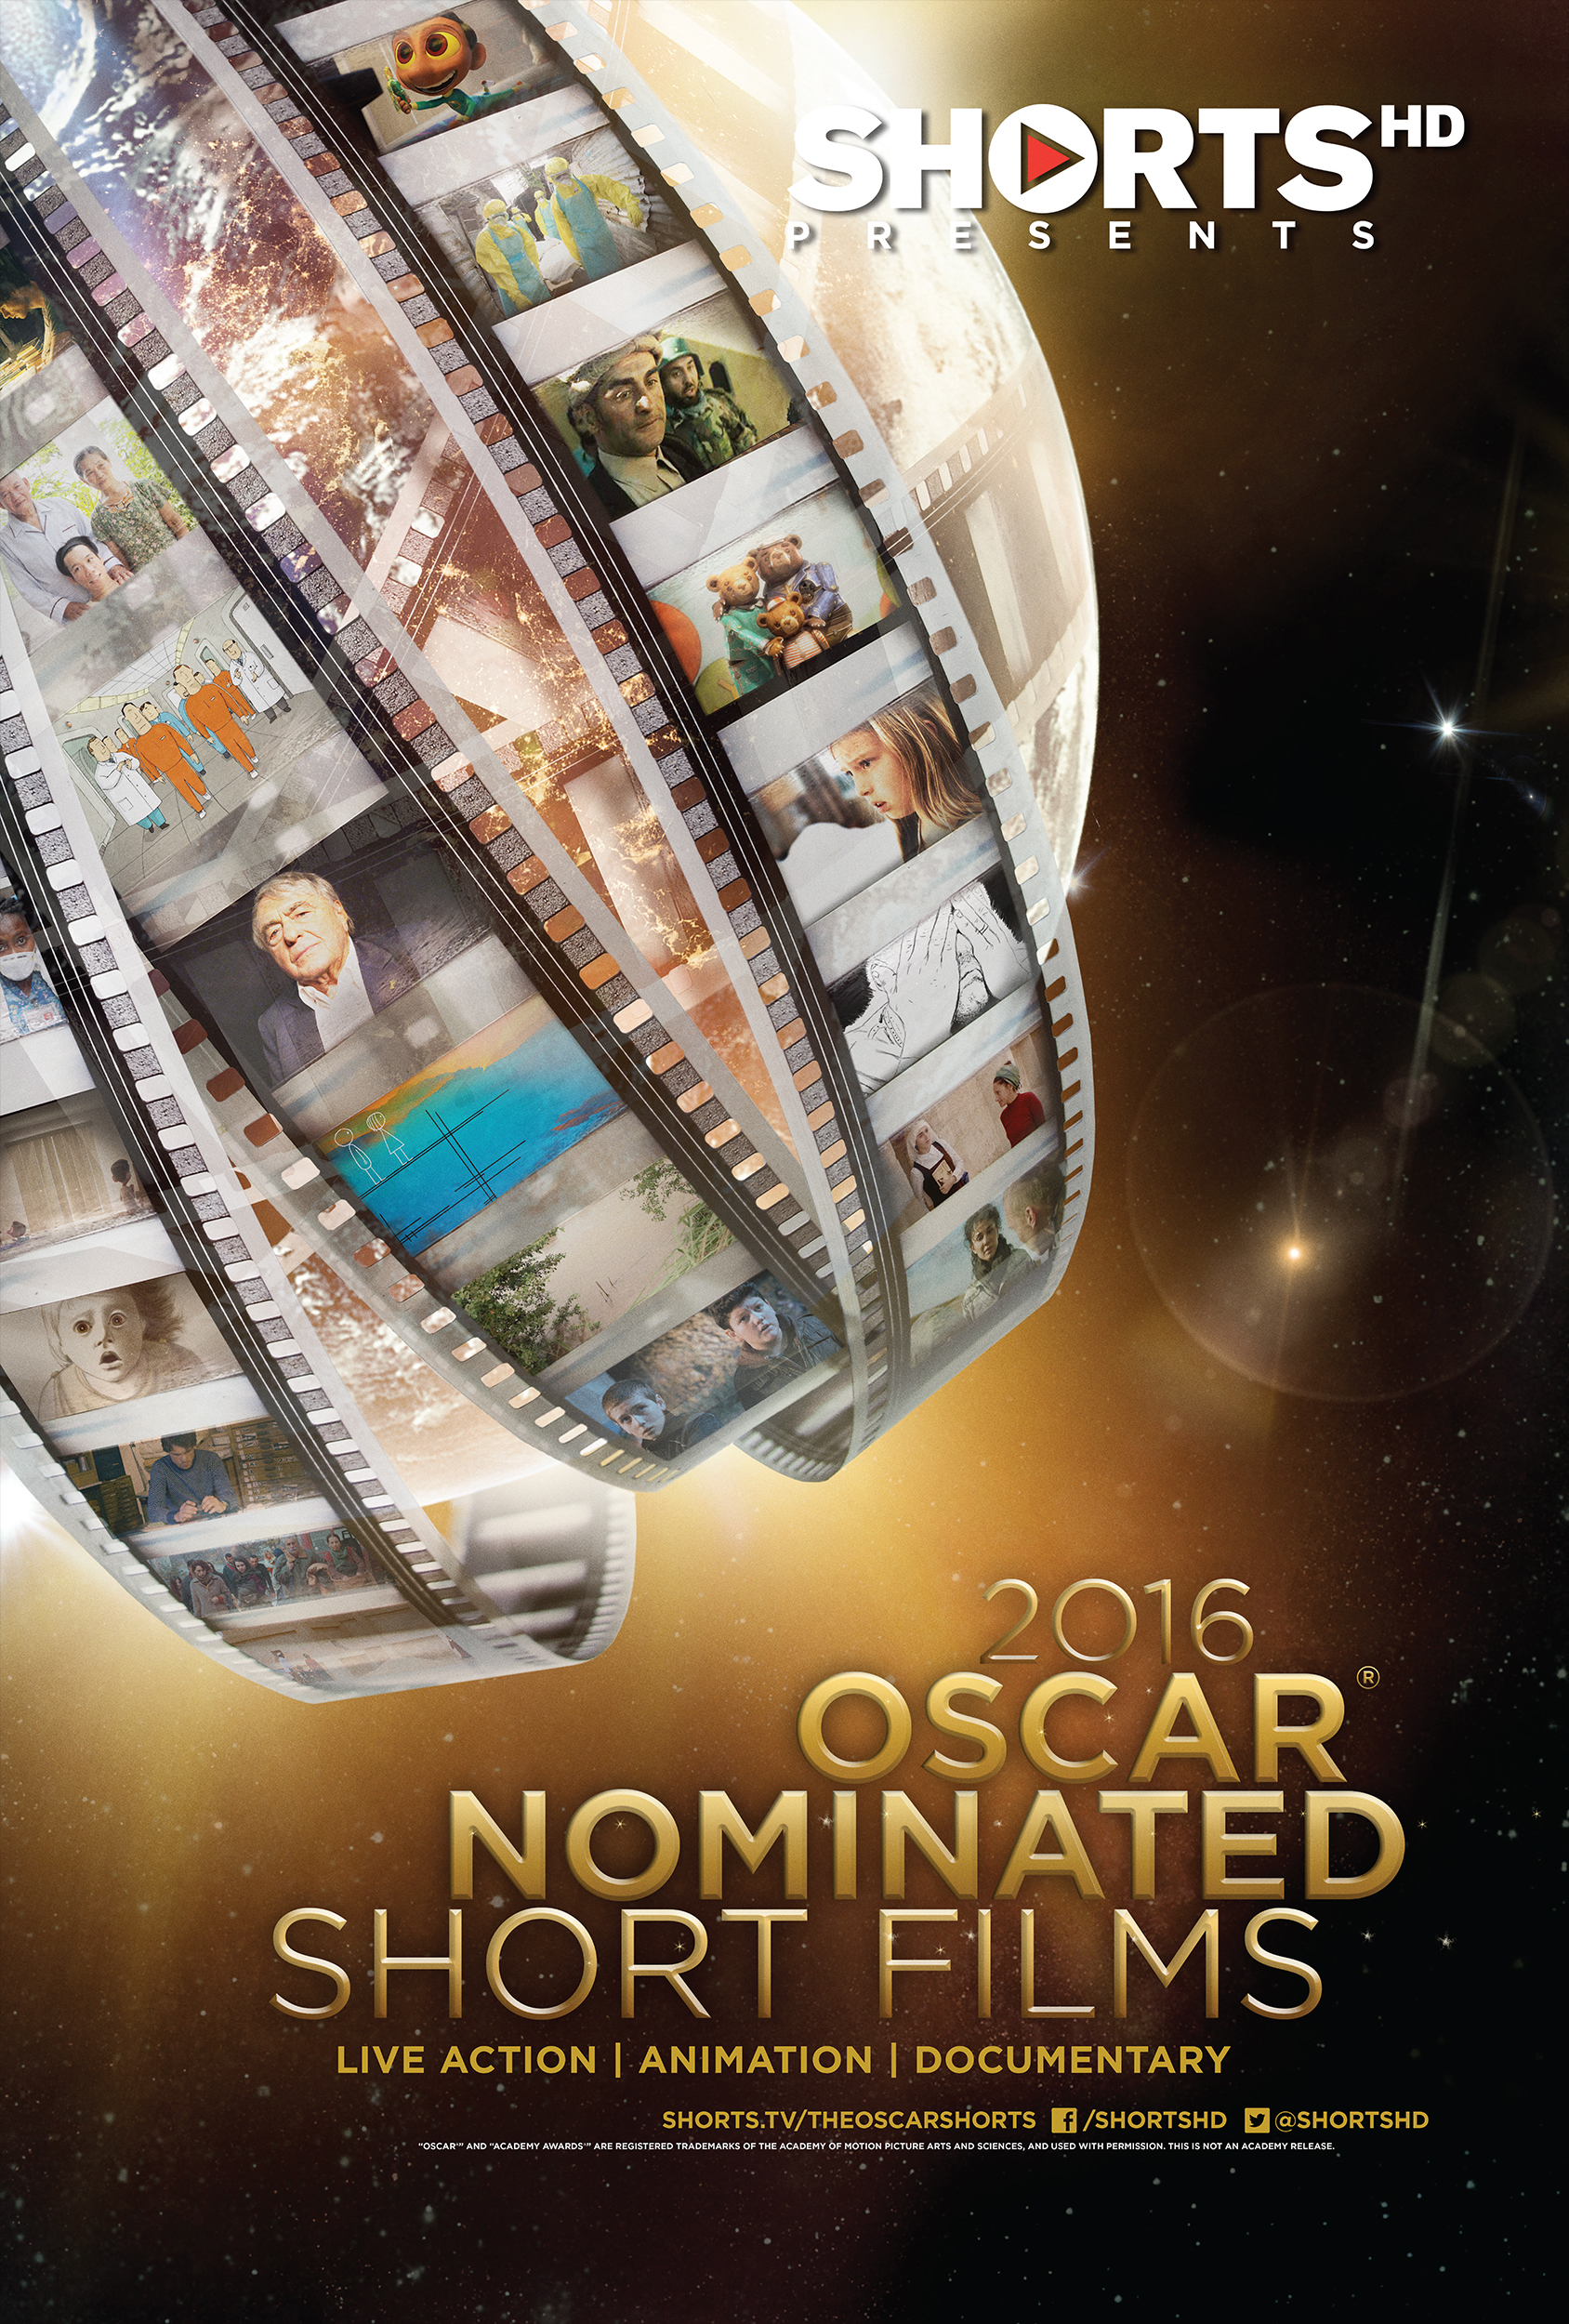 SHORTSHD_2016_OSCAR_POSTER_WORLD_2500PX_HIGH